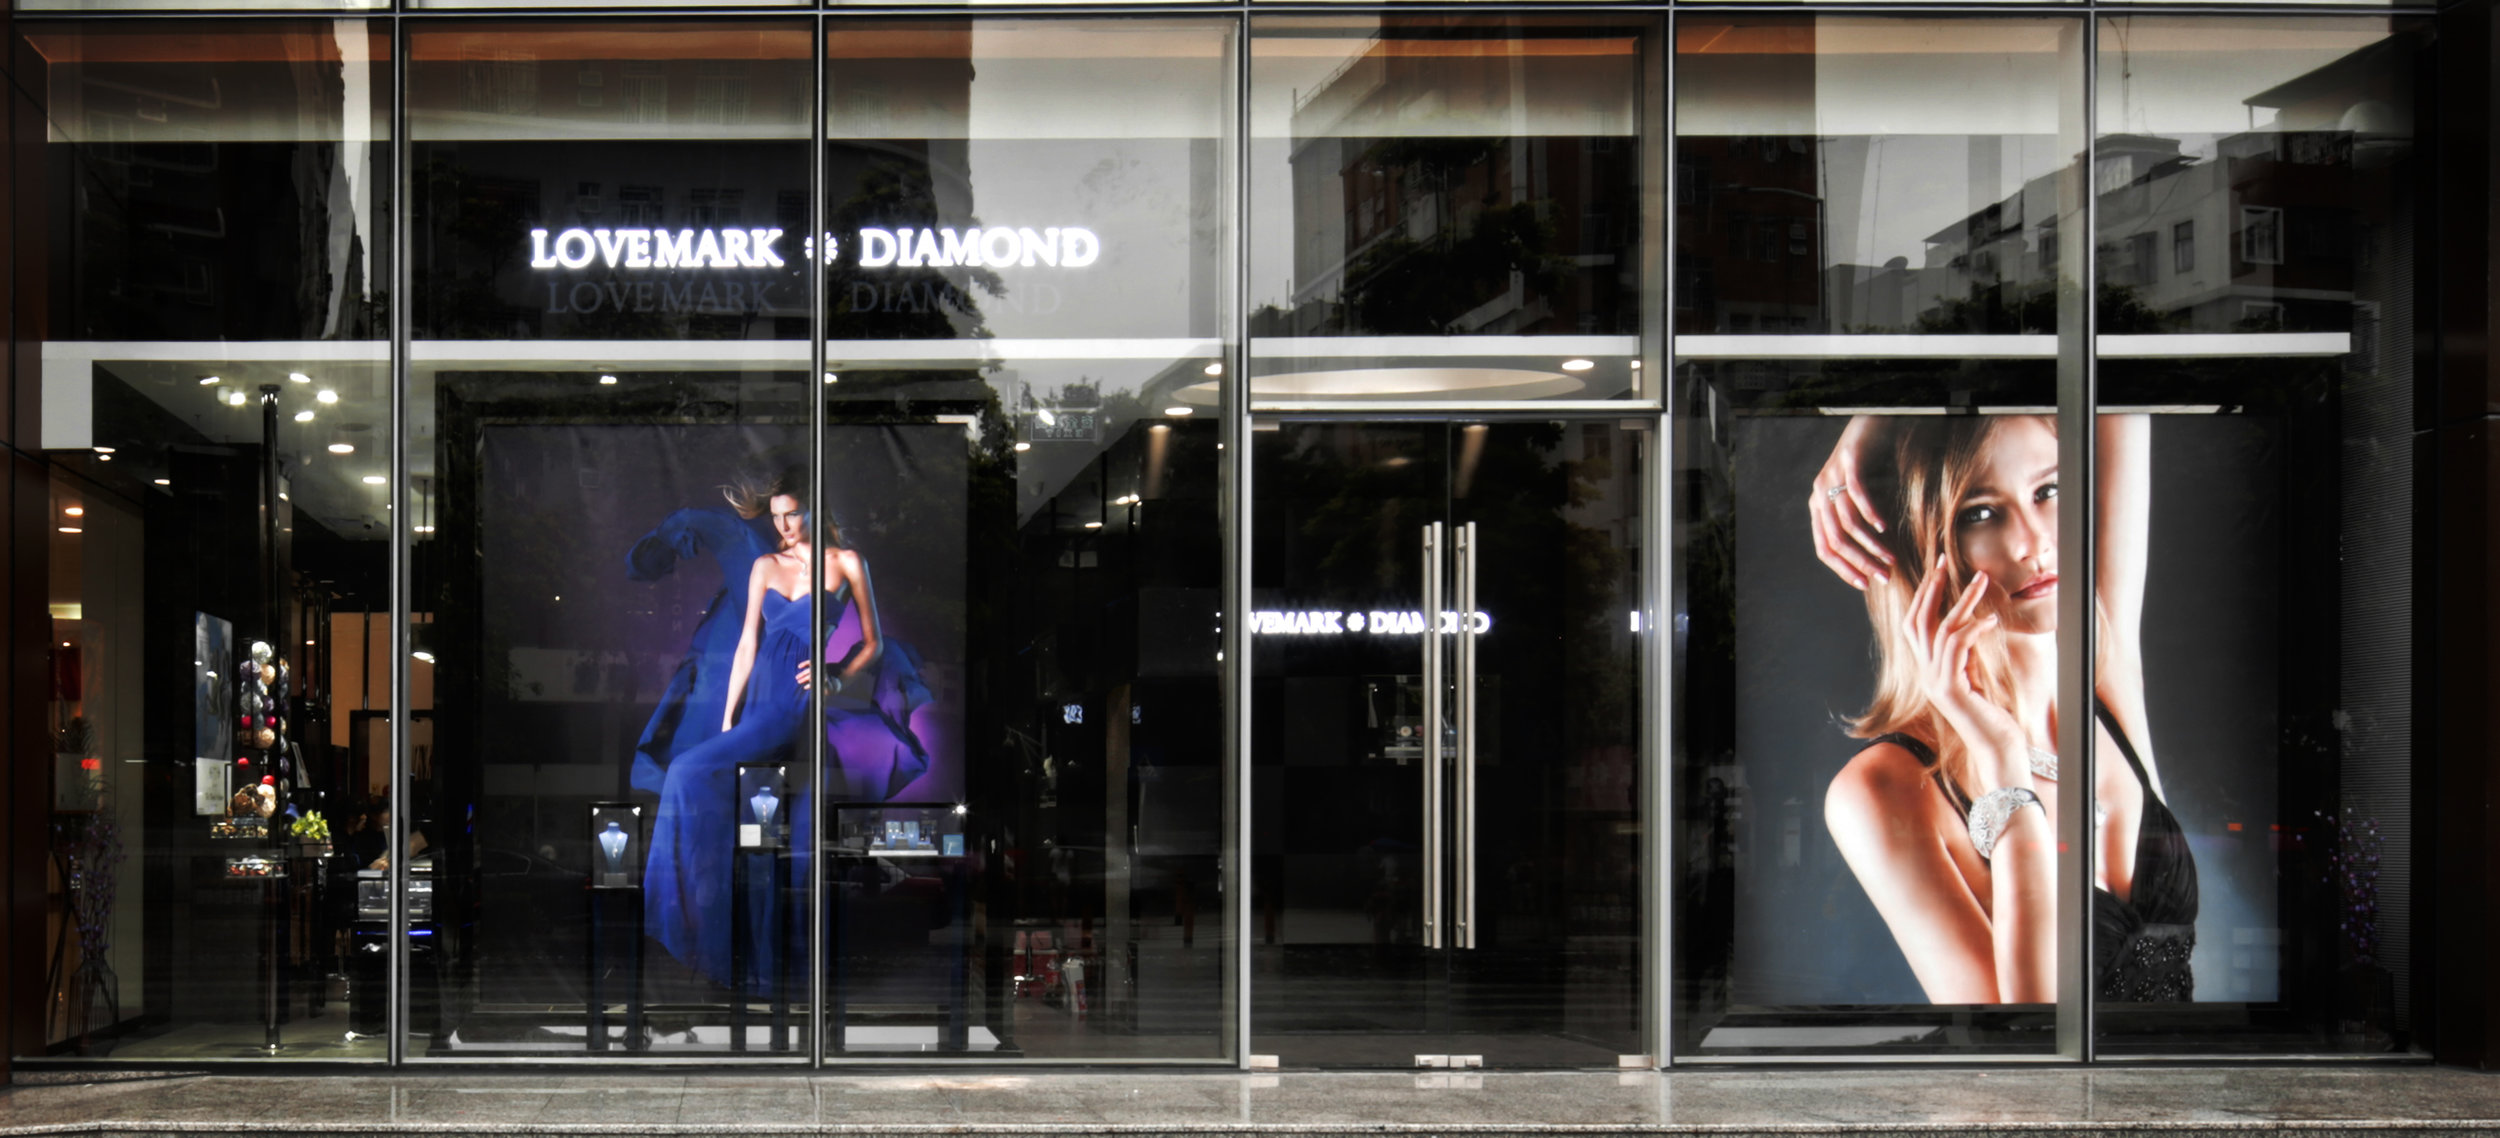 lovemark_shop_front crop.jpg